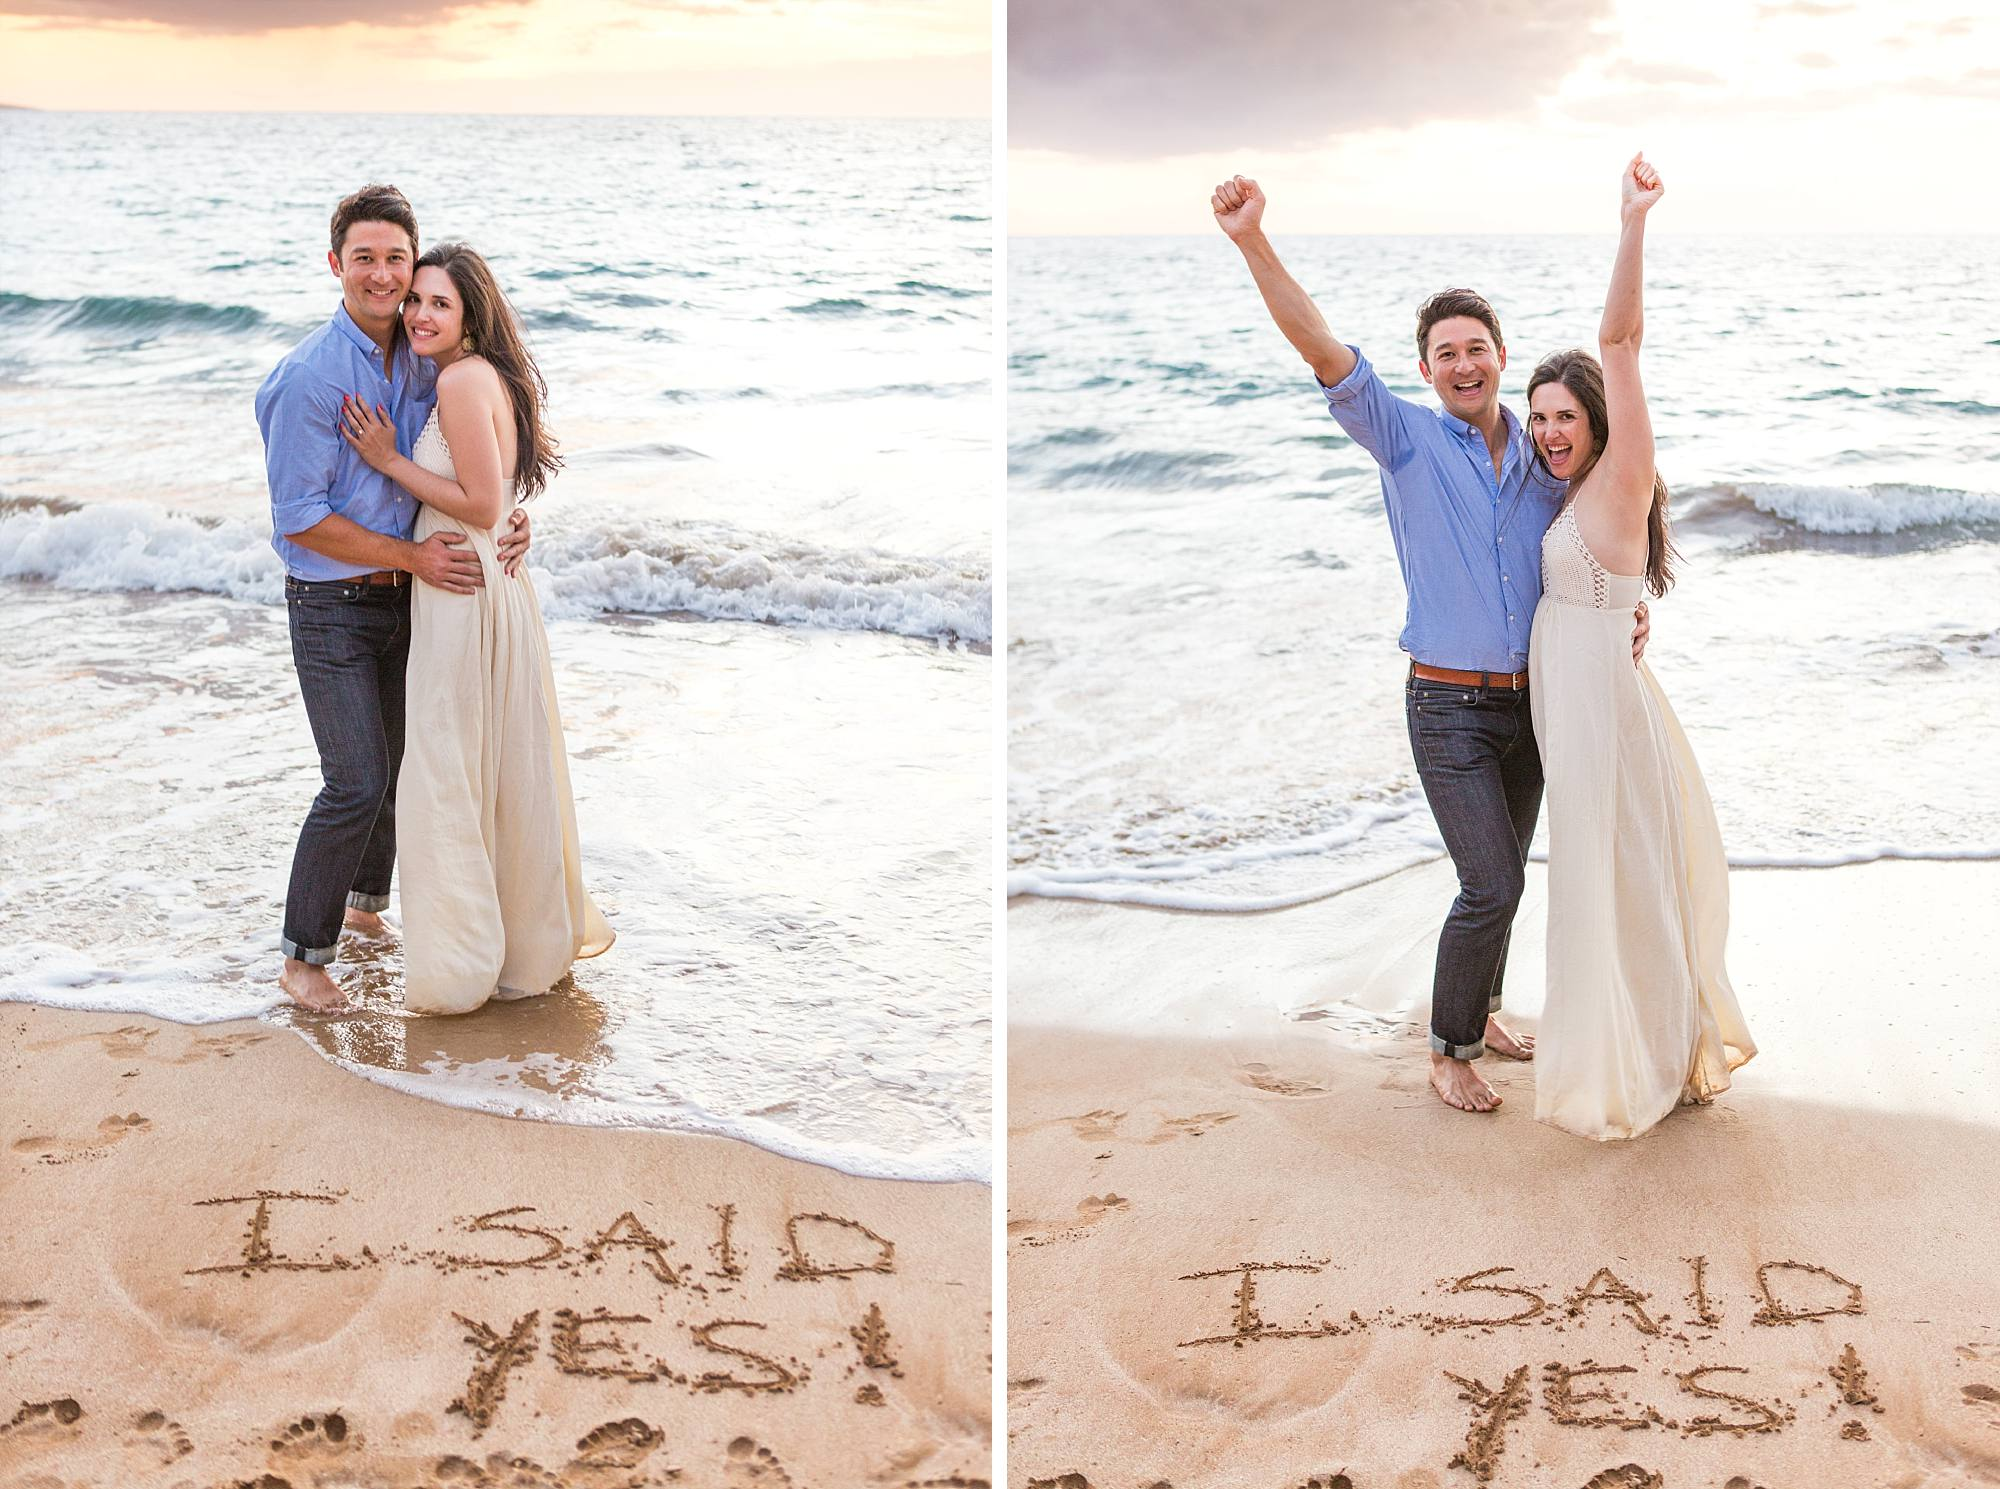 I said Yes written in the sand and couple raising their arms in victory behind them